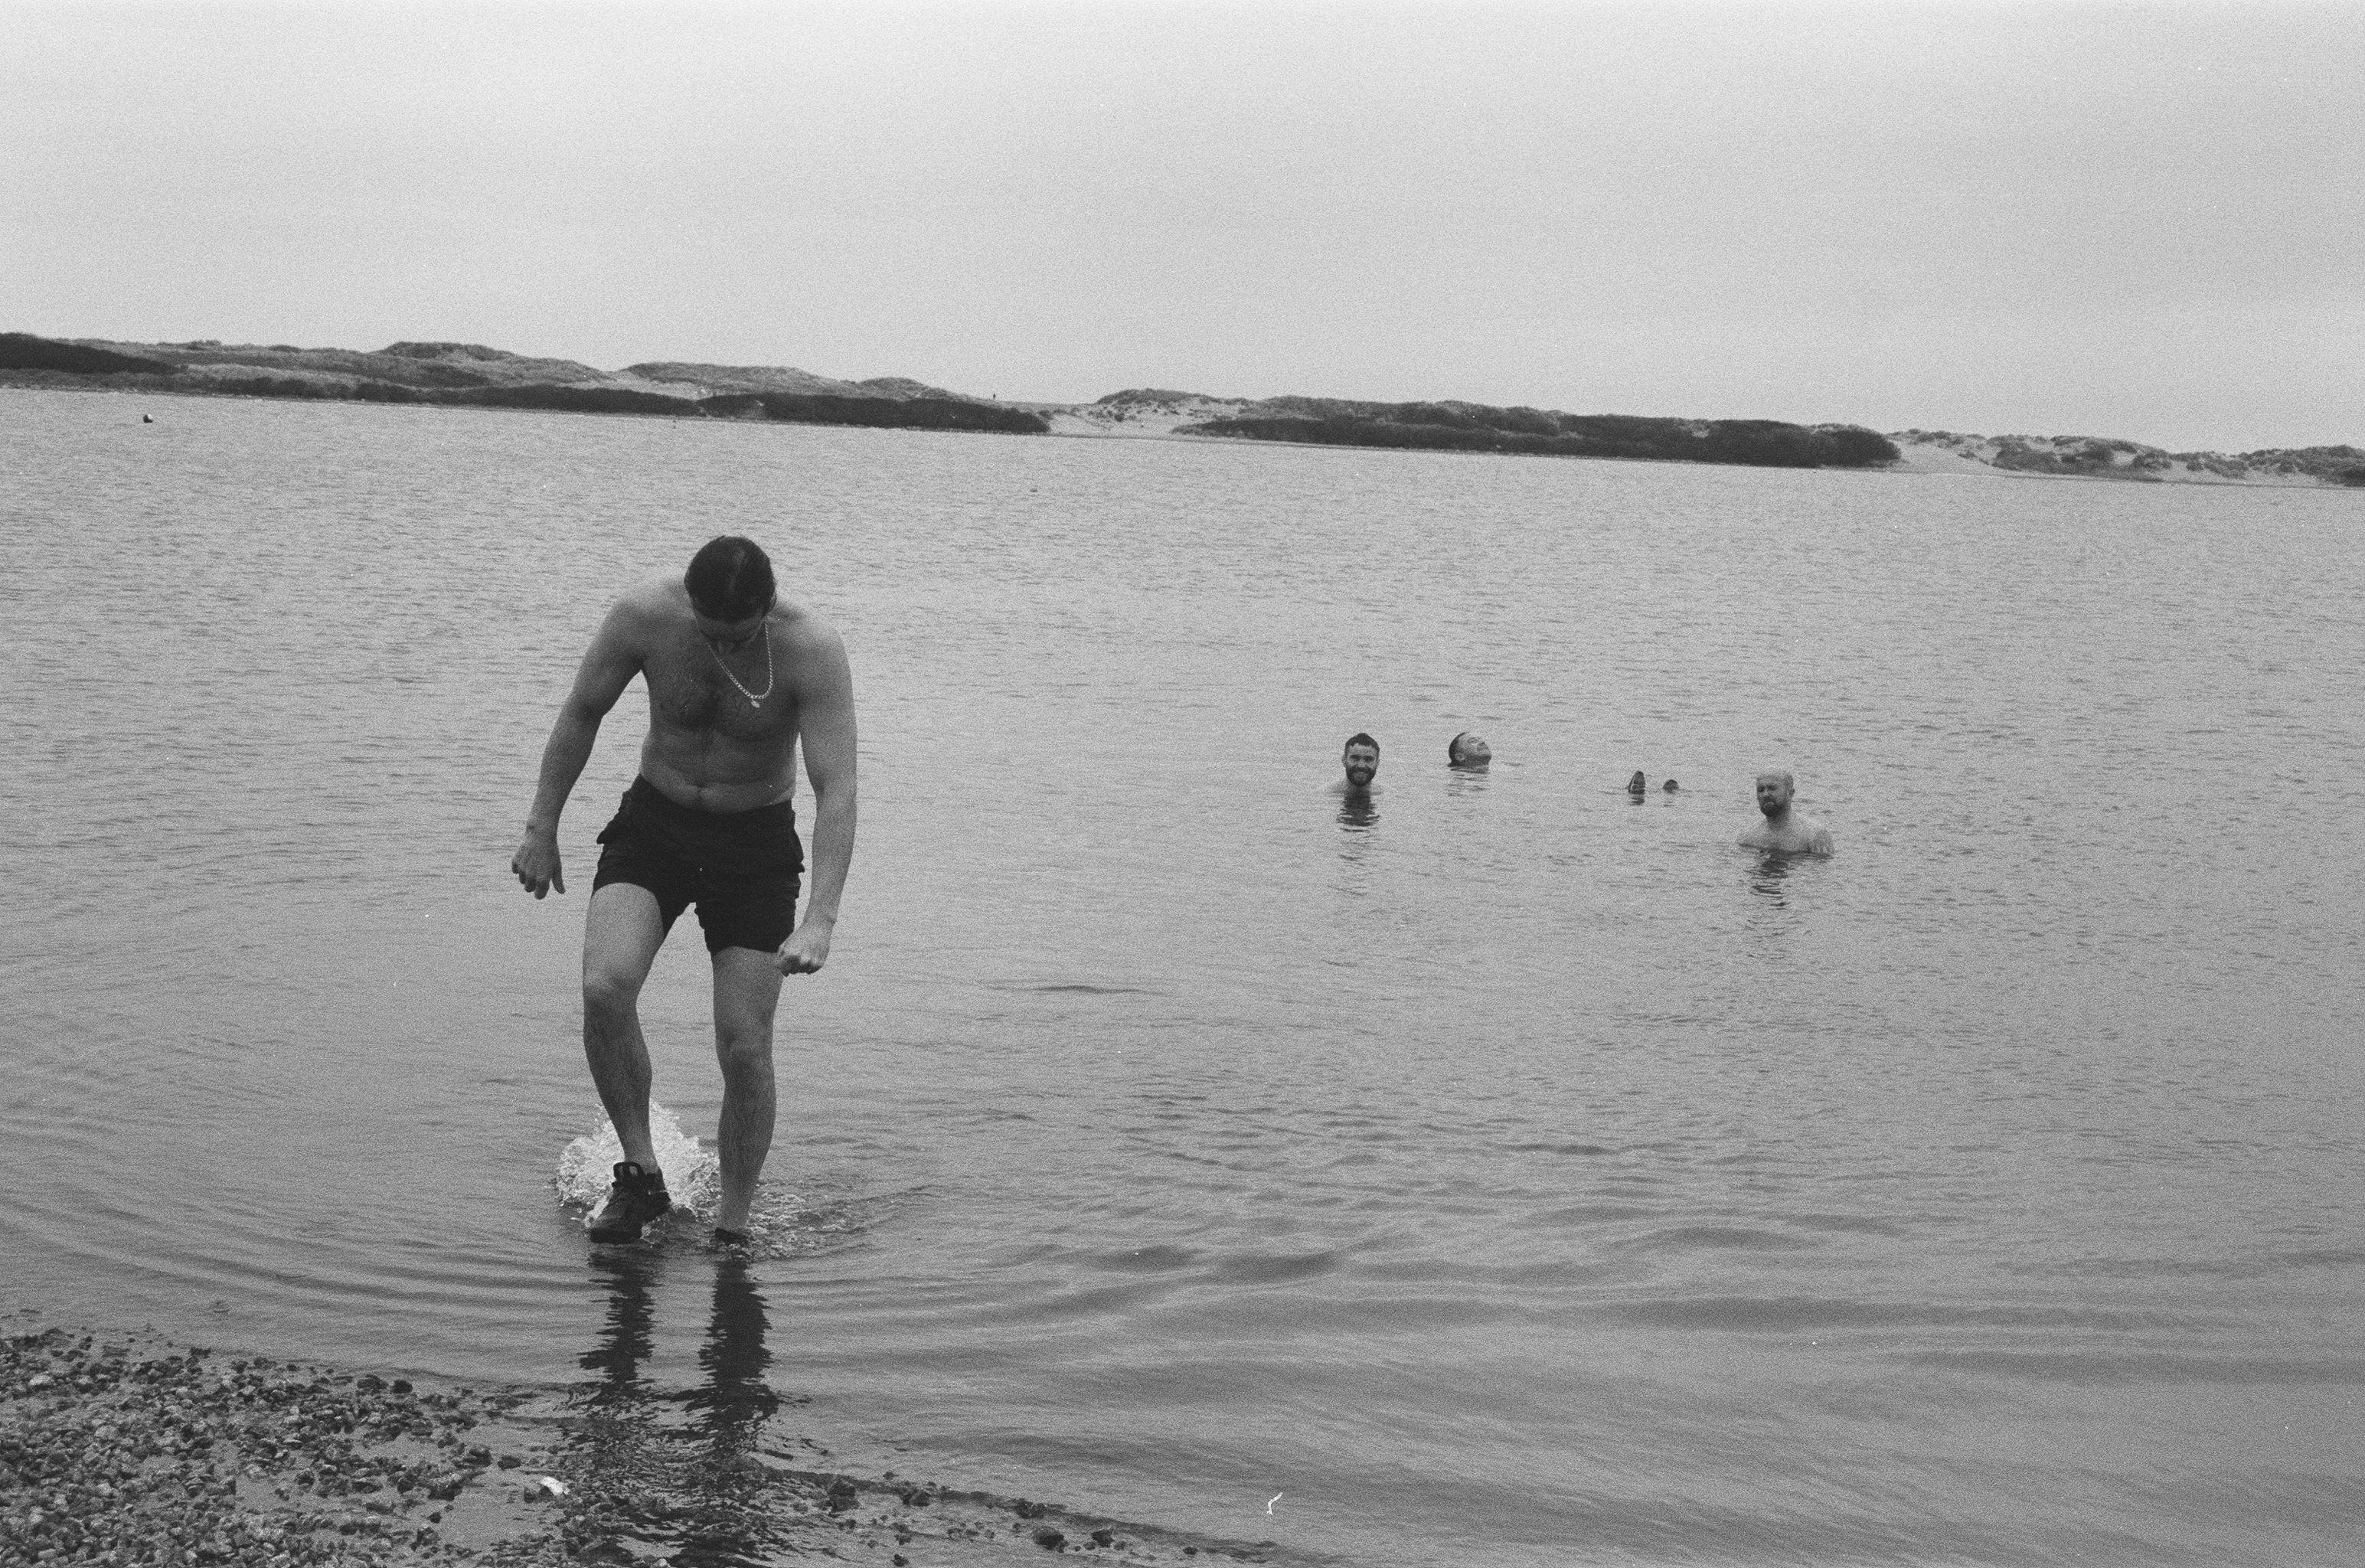 Black and white image of people in group of people swimming - photographs from exhibition from 3 bull mastiffs / one day at a time boys.